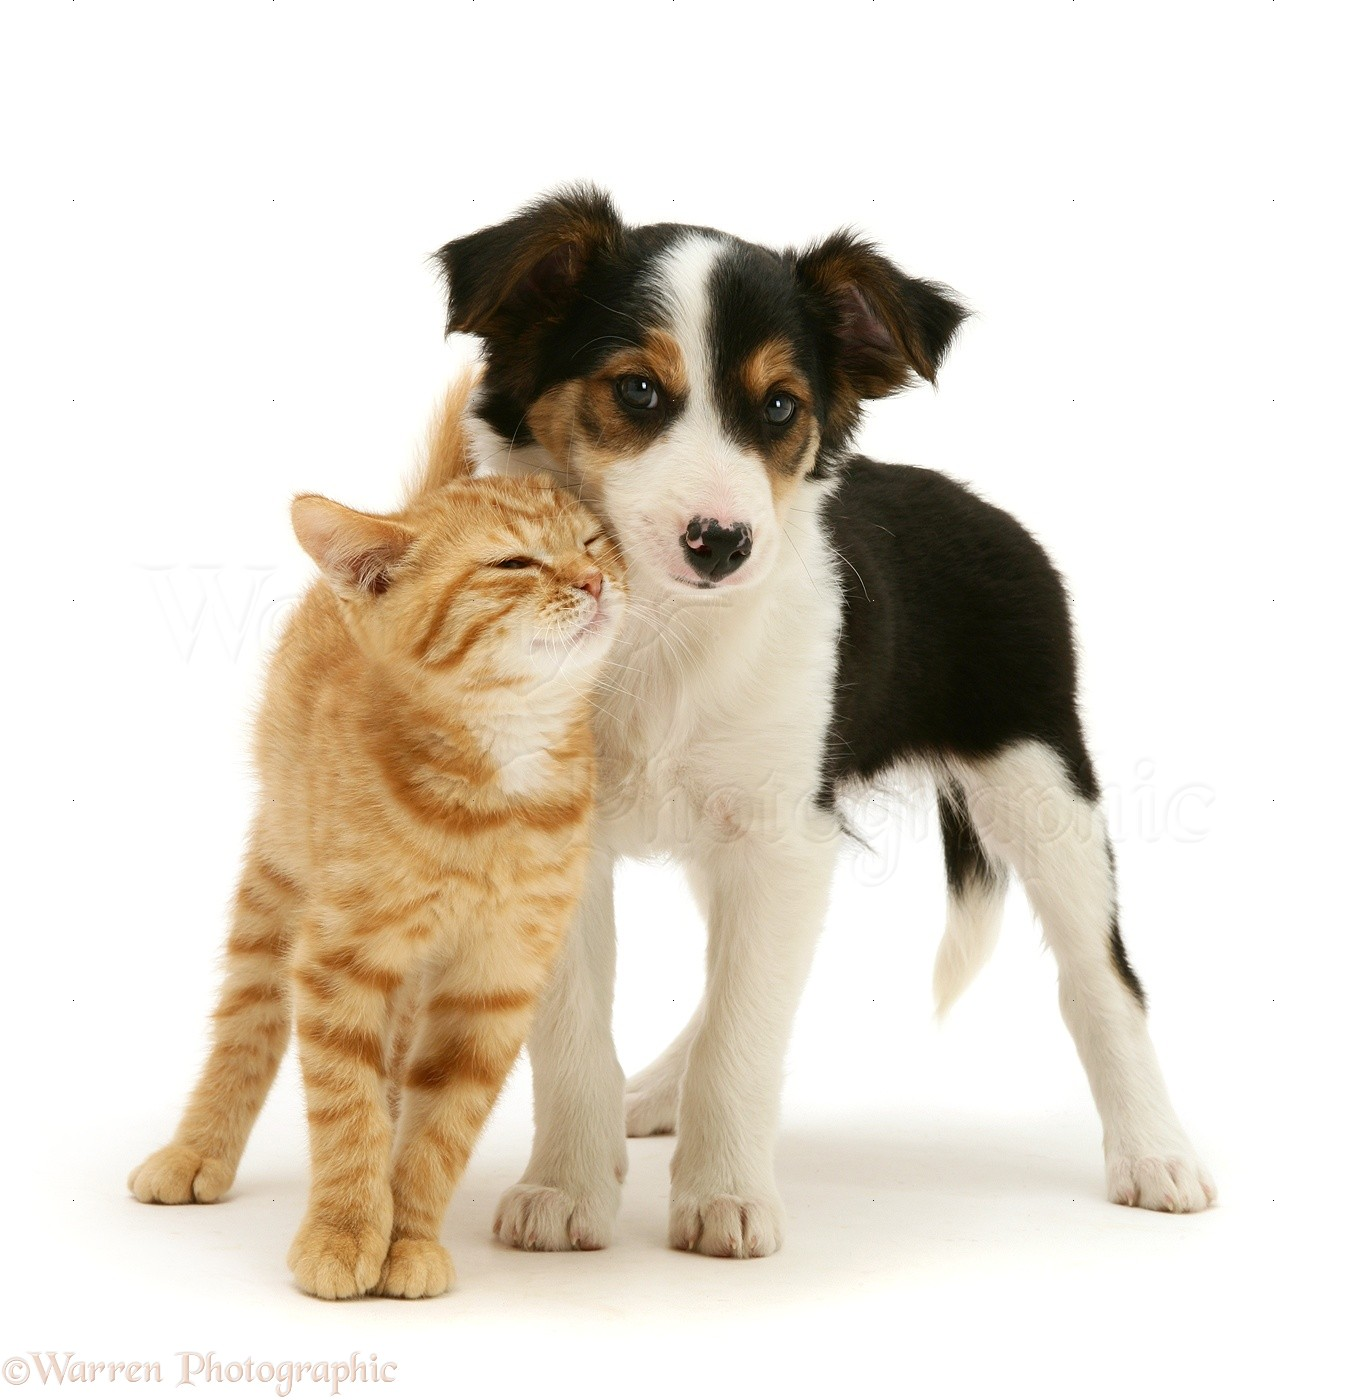 Pets Ginger Kitten And Border Collie Pup Photo Wp22405